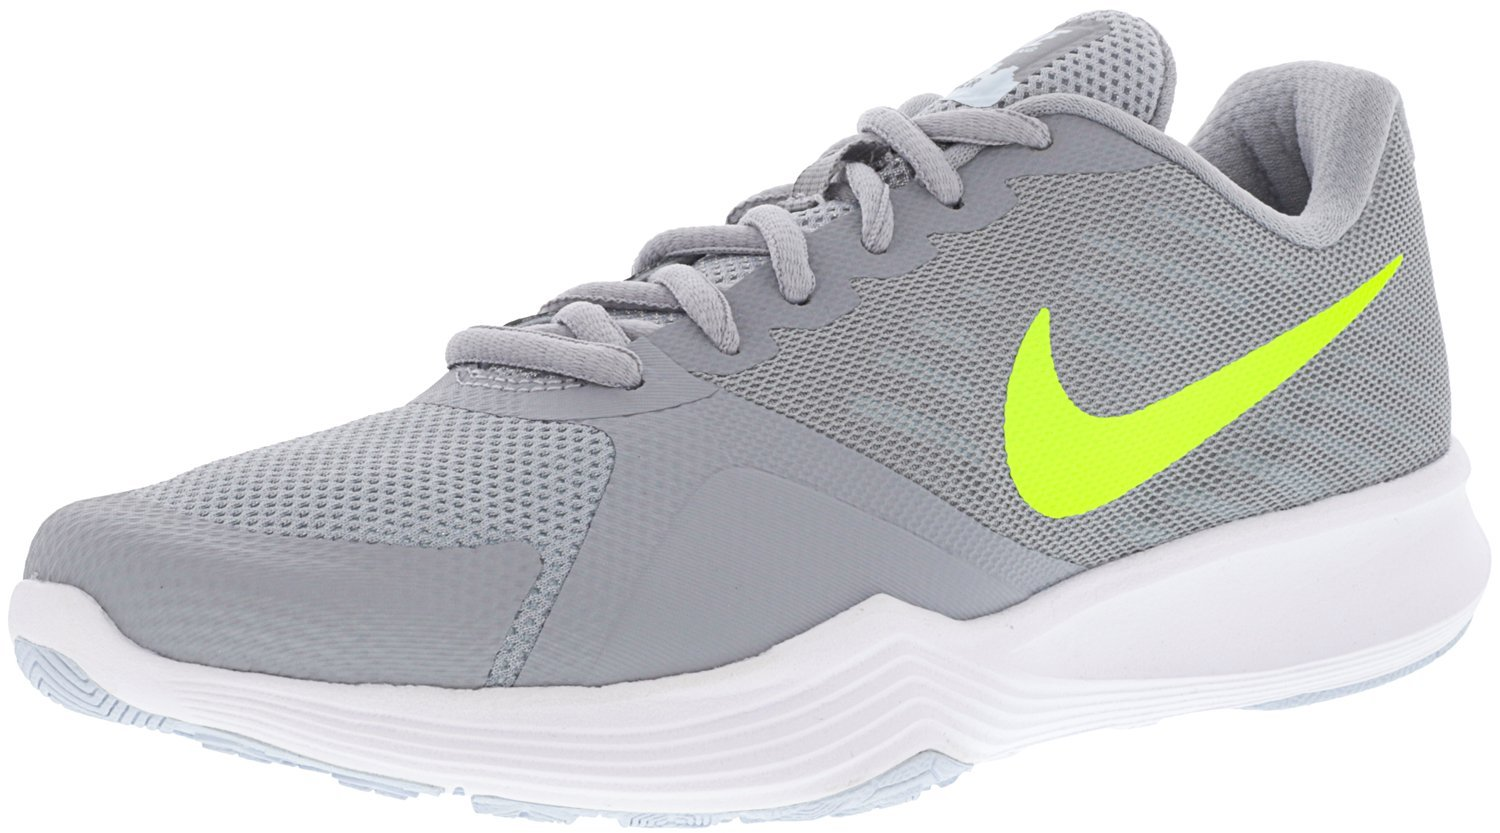 NIKE Women's City Cross Trainer B06X3XHDKL 7.5 B(M) US|Wolf Grey/Volt-glacier Blue